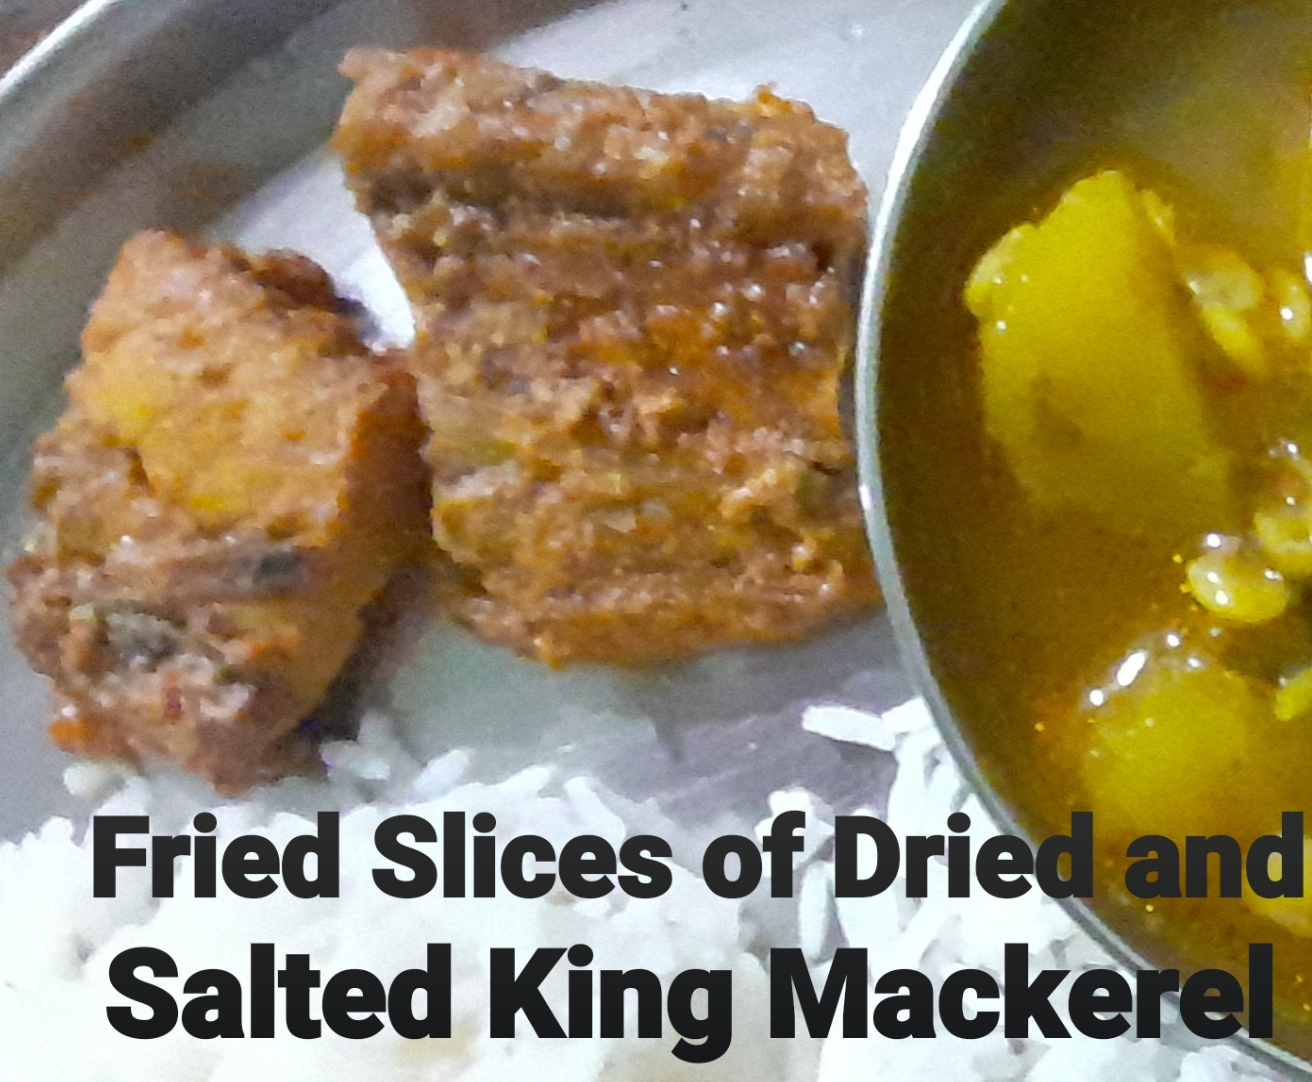 Fried Slices of Dried and Salted King Mackerel